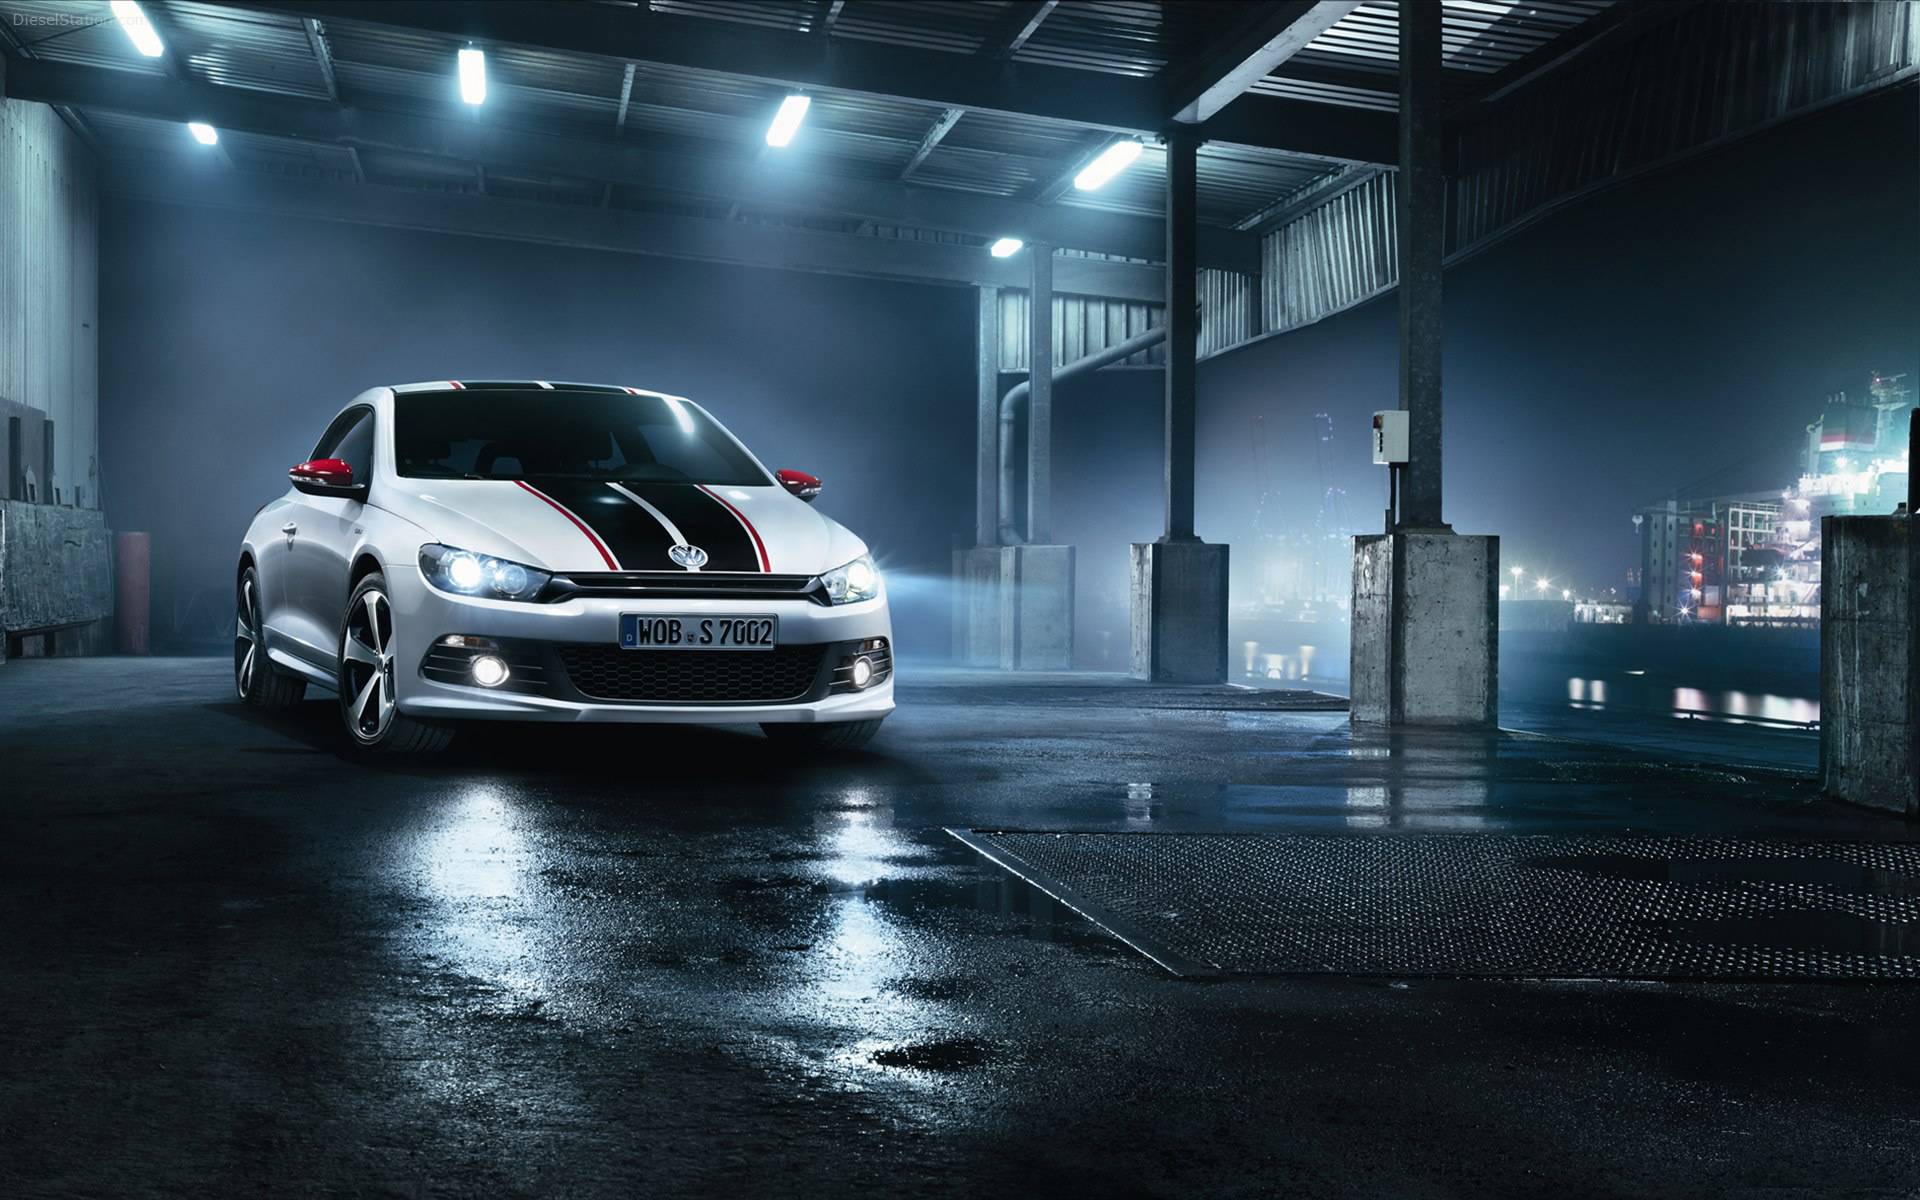 2013 Volkswagen Scirocco GTS Wallpaper HD Car Wallpapers 1920x1200